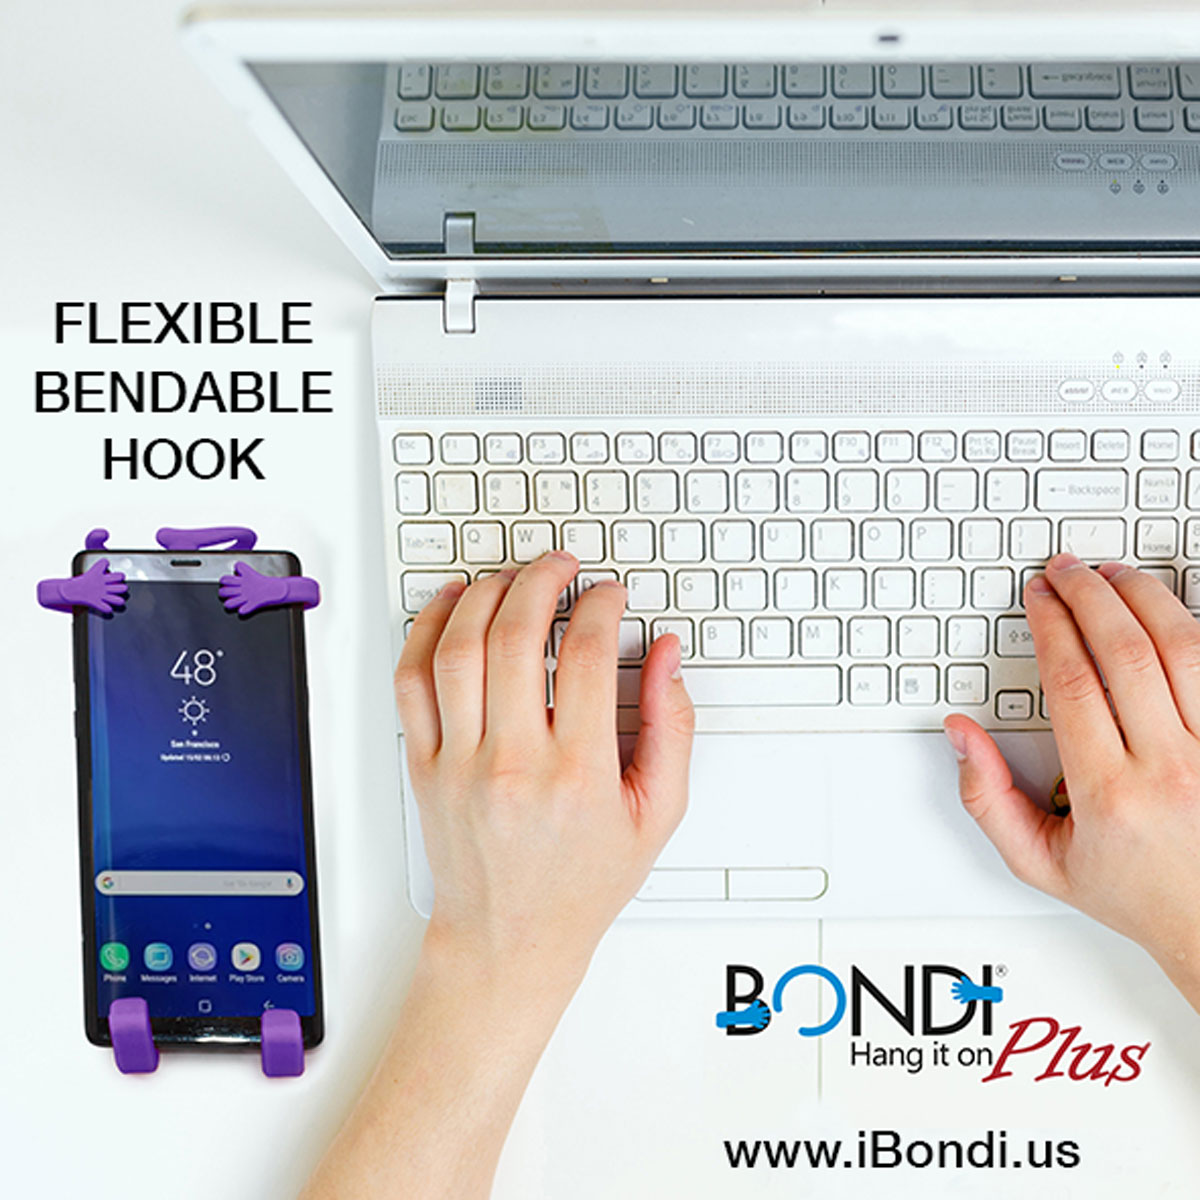 Bondi Plus bend hook purple